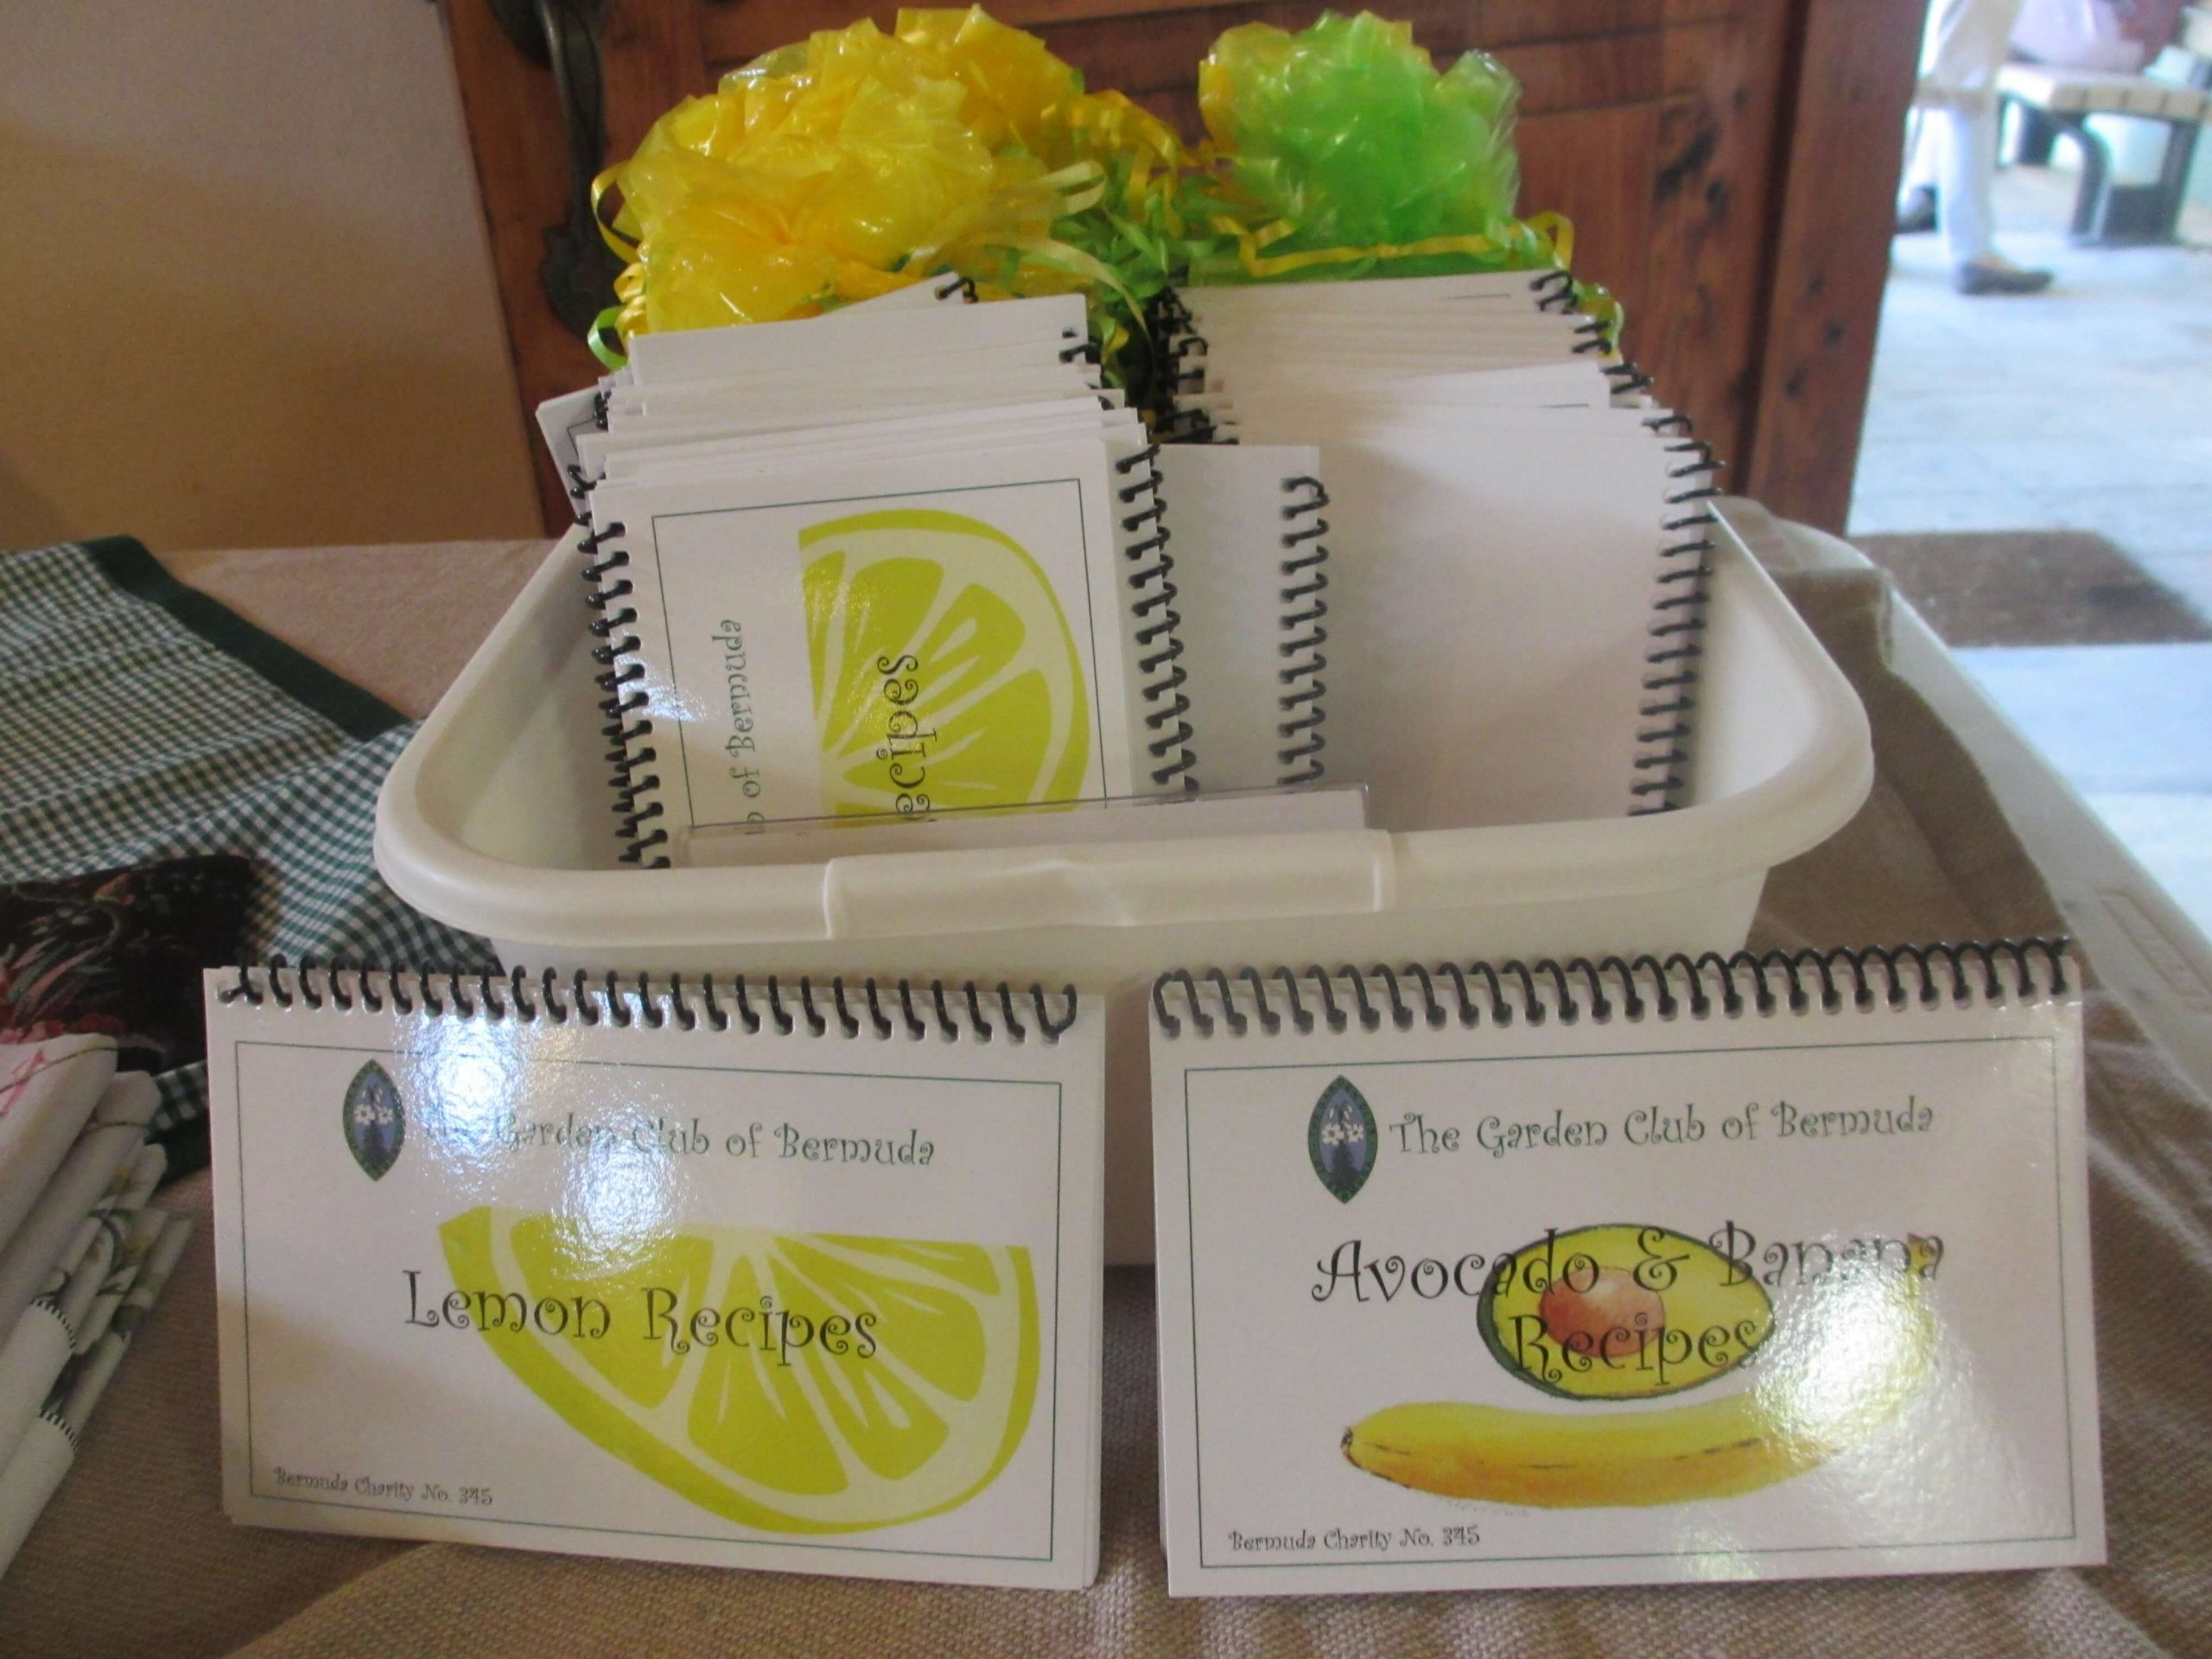 Lemon Recipes book and Avacados and Banana Recipes Book from The Bermuda Garden Club